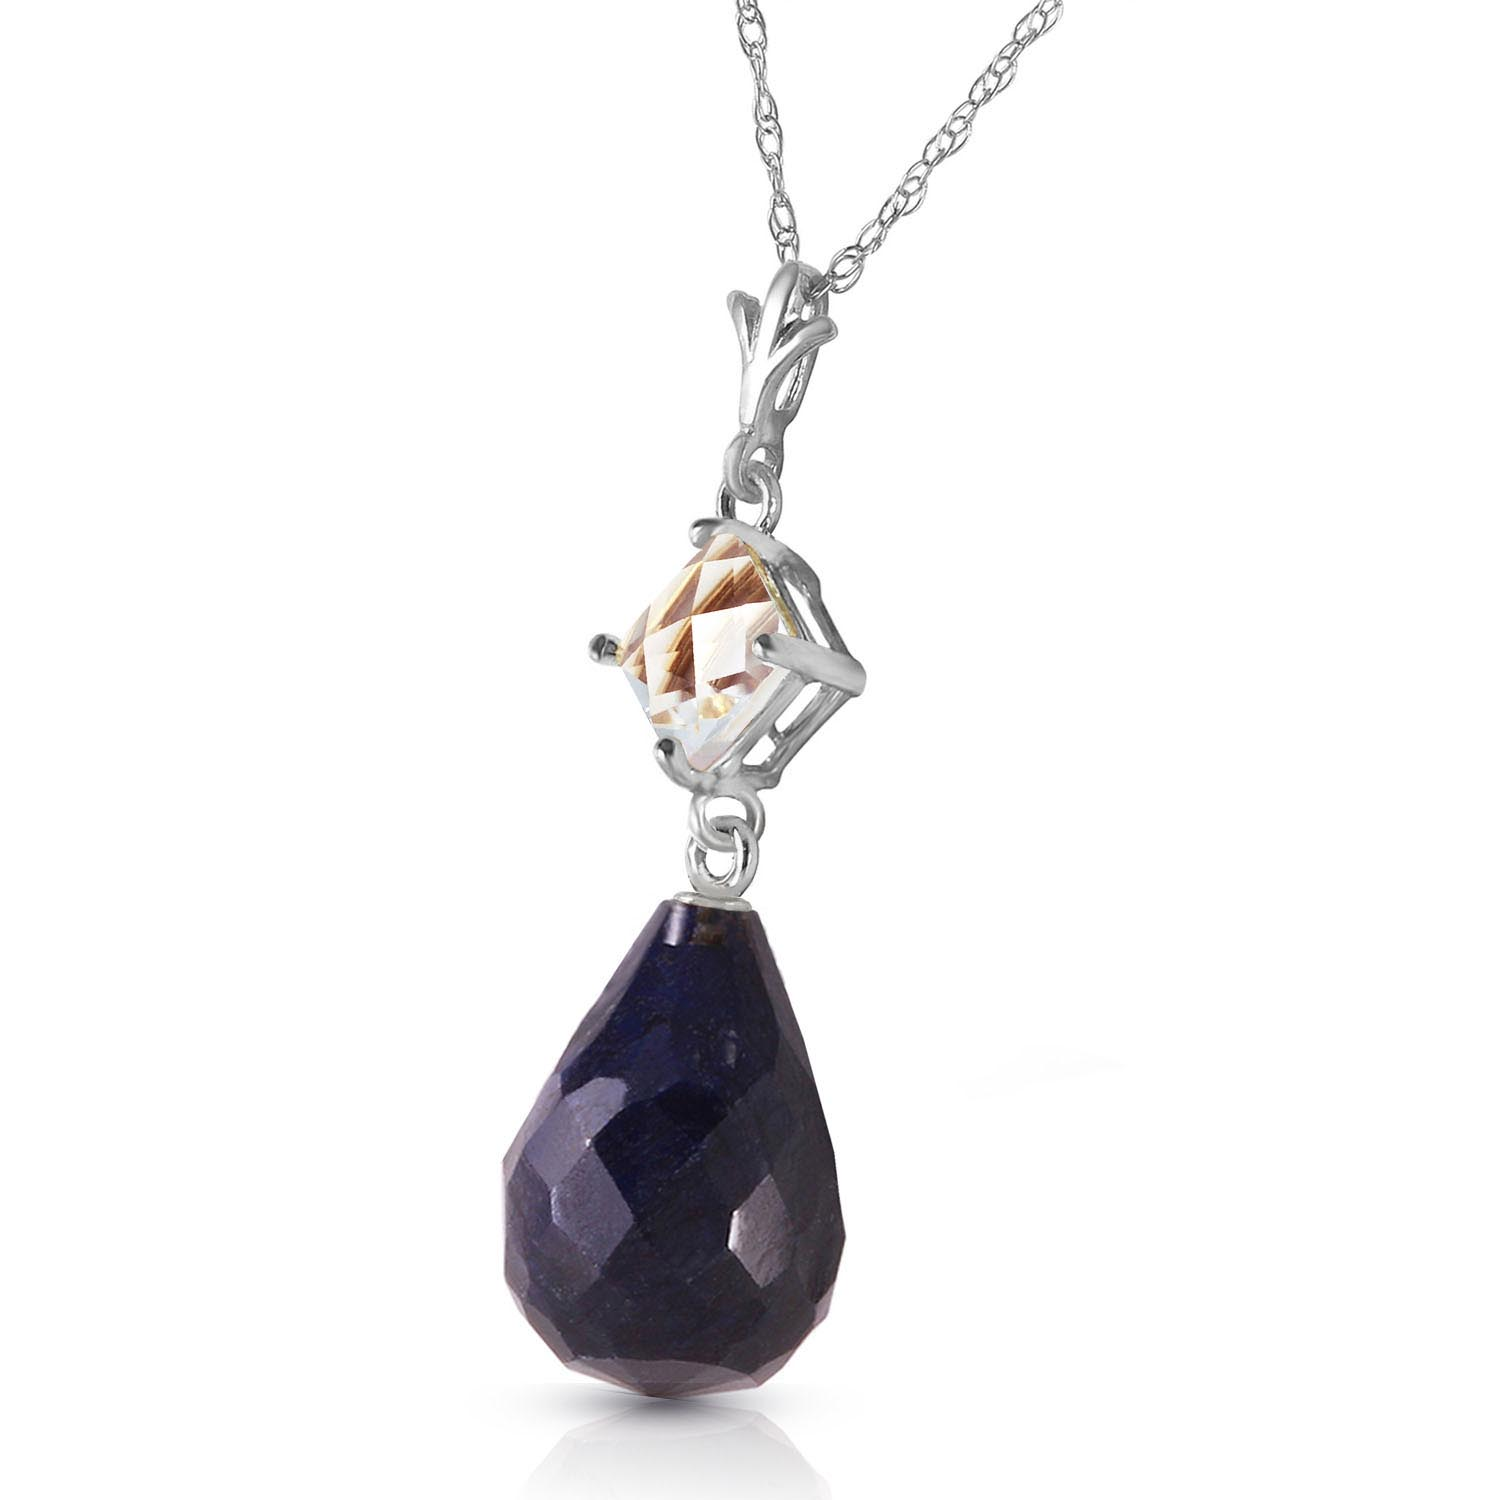 Sapphire and White Topaz Pendant Necklace 9.3ctw in 9ct White Gold